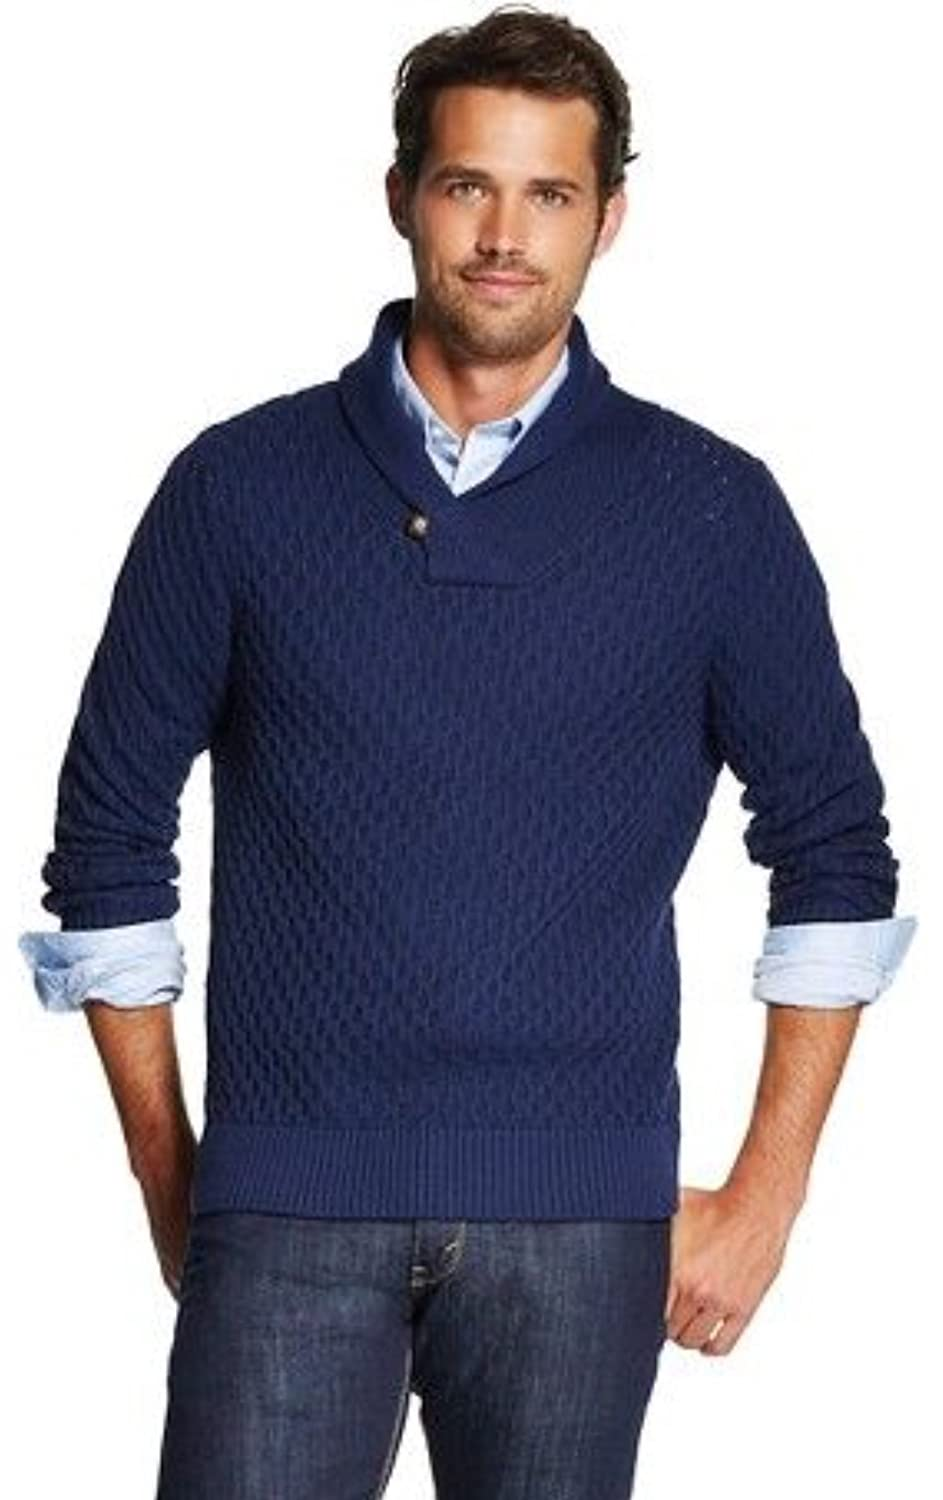 Masked Brand Merona Men\u0027s Shawl Collar Blue Pullover Knit